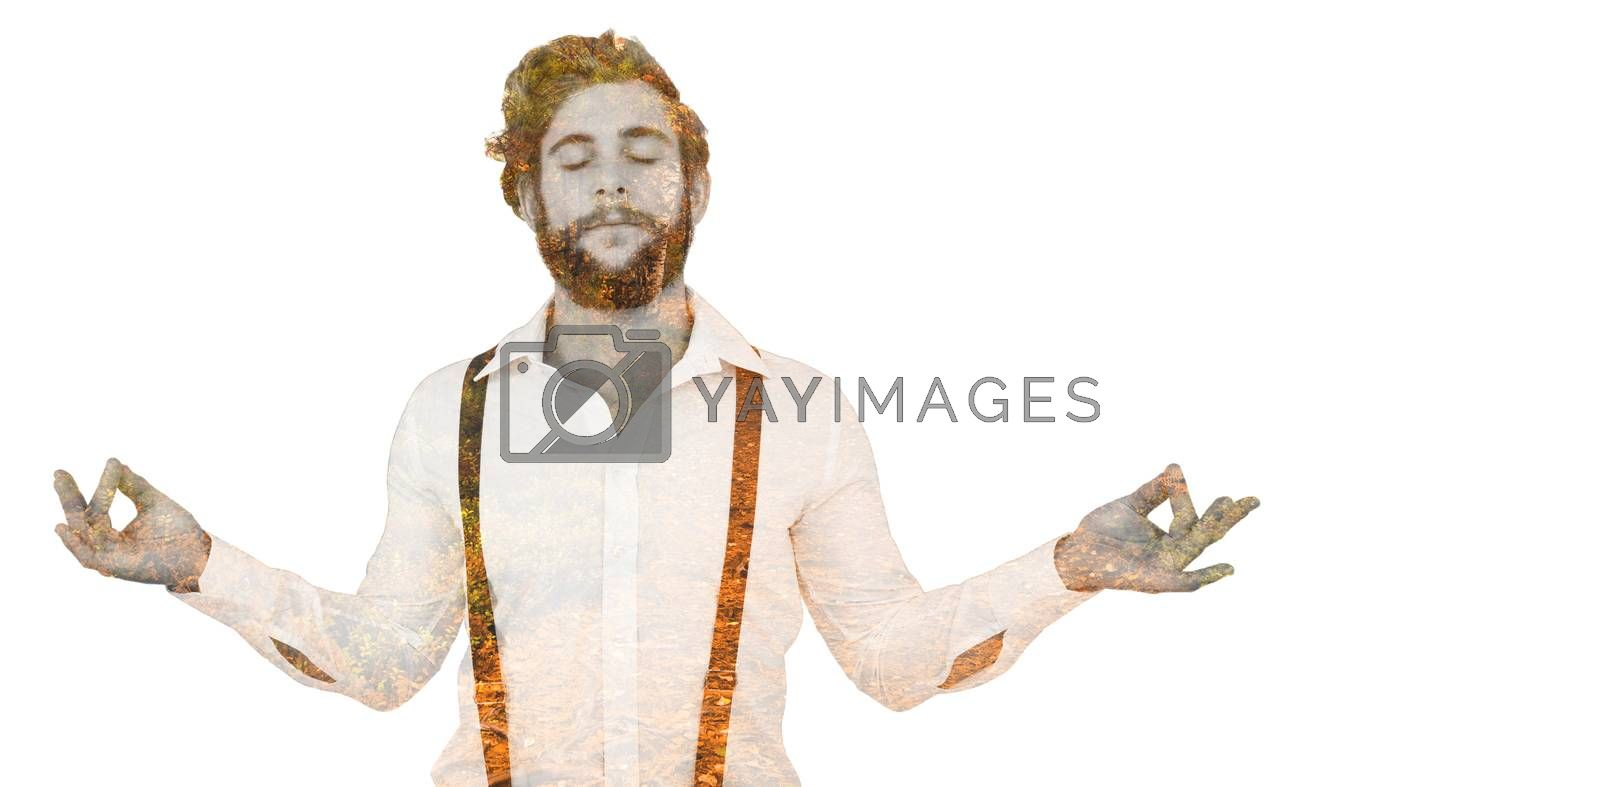 Hipster meditating arms outstretched against autumn scene